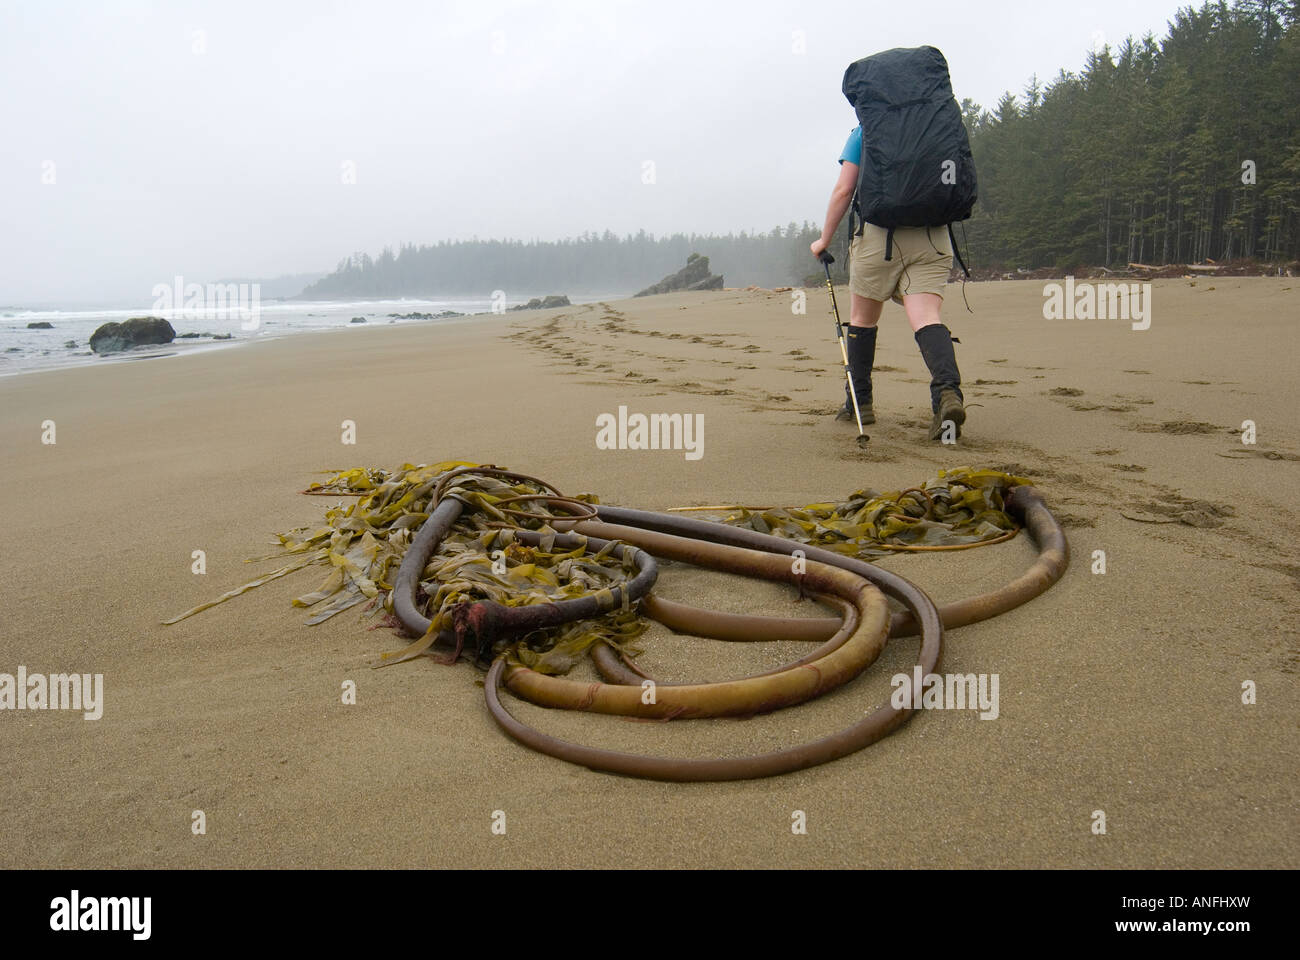 Sandy Beach near Coal and Cribs Creeks, West Coast Trail, Pacific Rim National Park, Vancouver Island, british columbia, - Stock Image